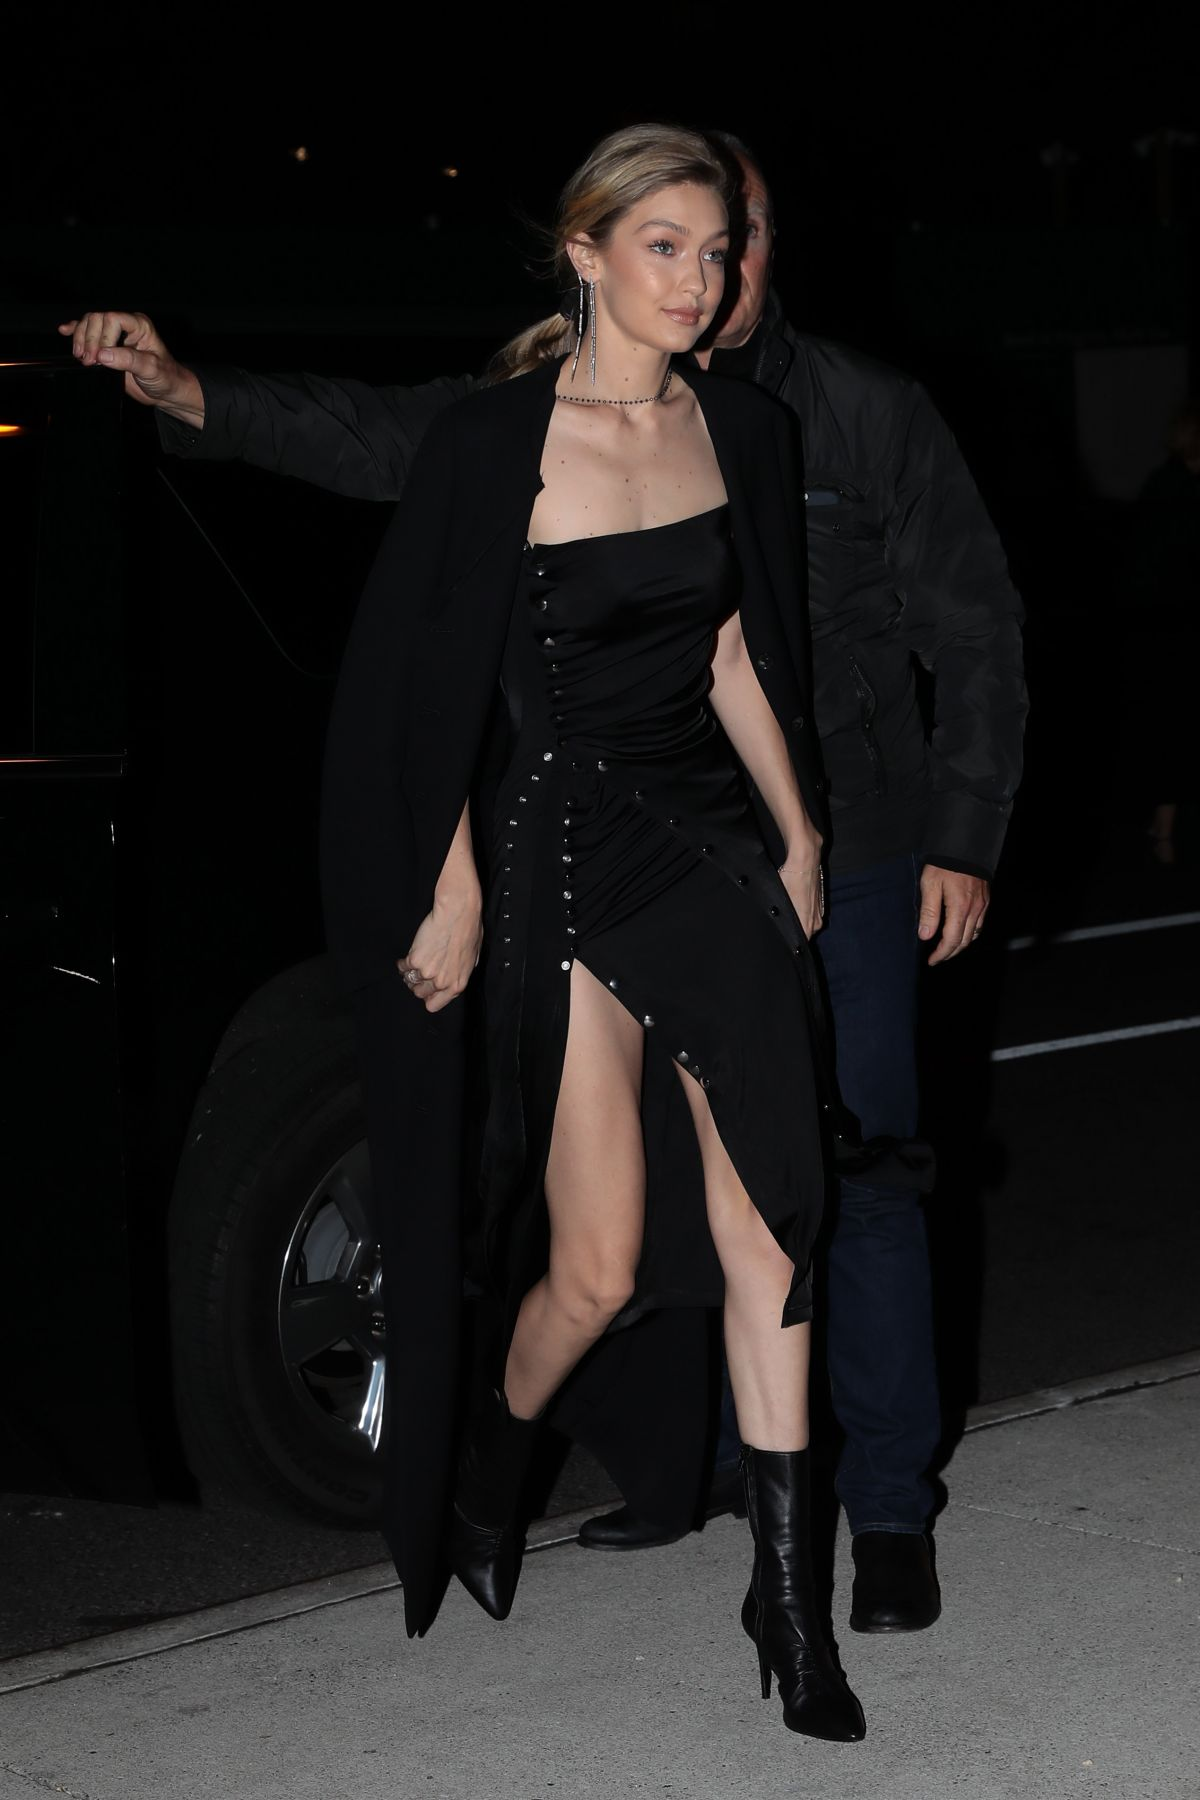 Gigi Hadid Steps out wearing all black in NYC